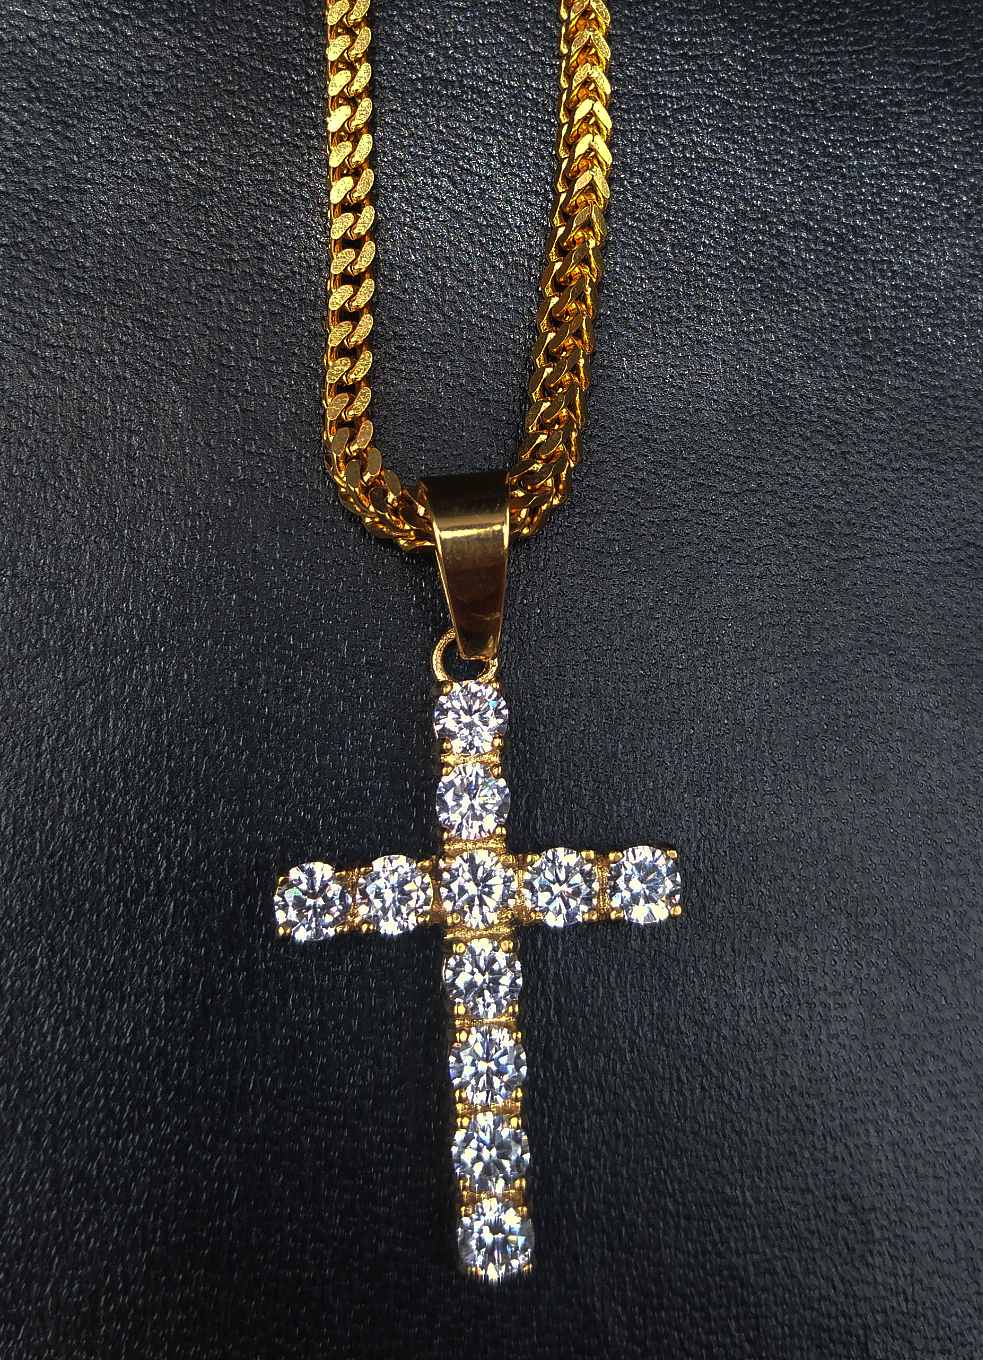 4mm  diamond cross pendant & chain set